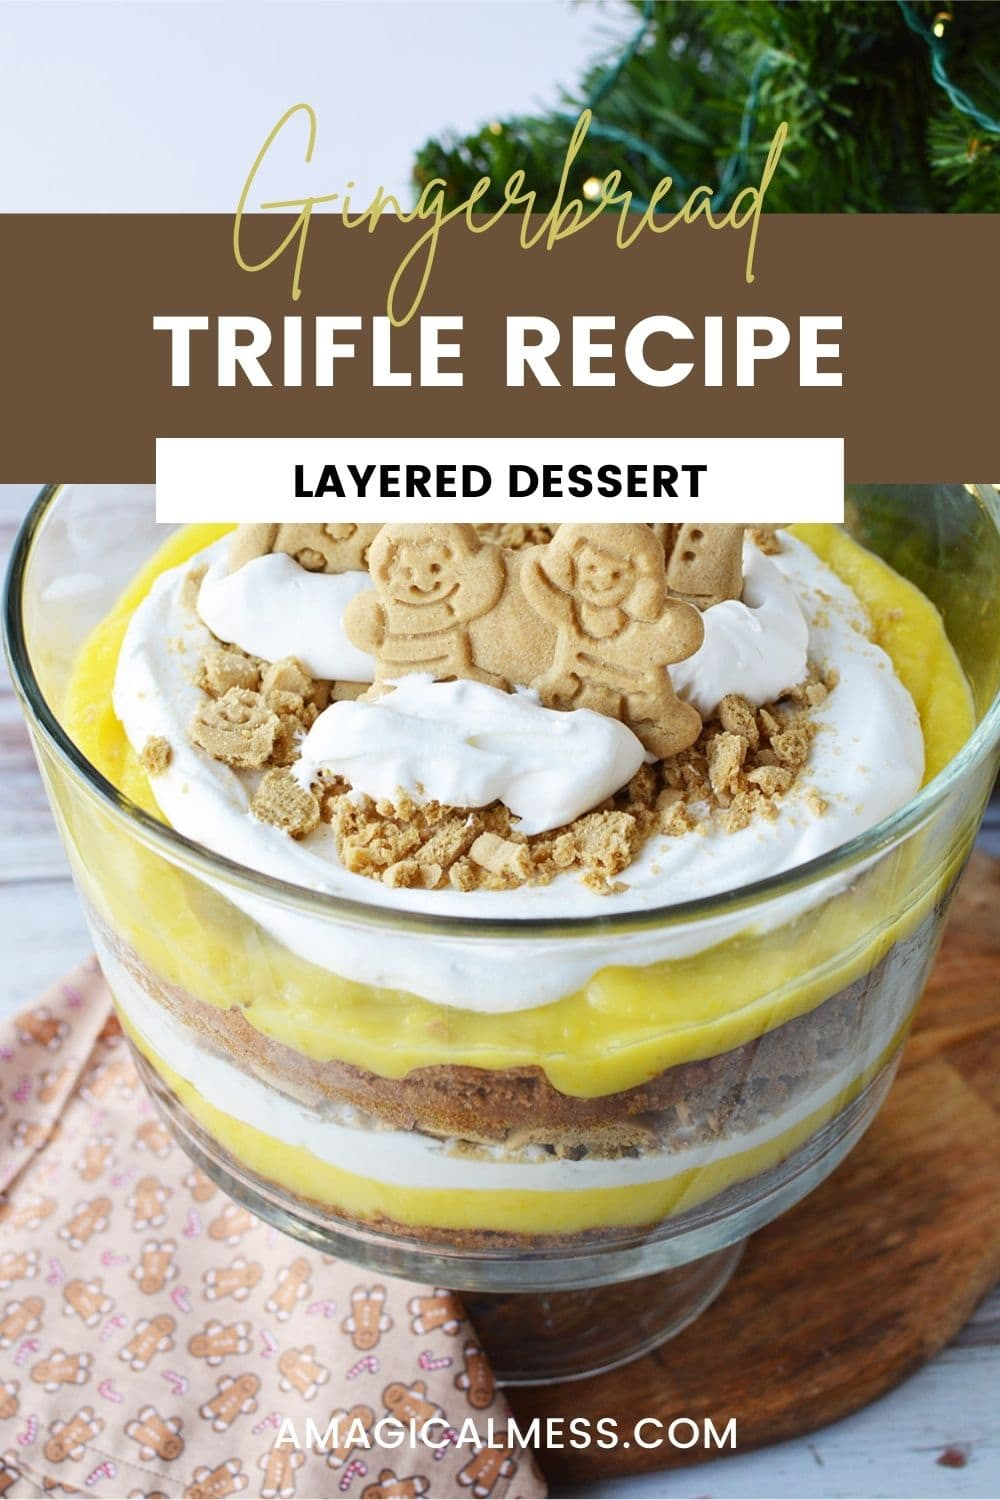 Gingerbread family cookies on top of a spice cake layered trifle.